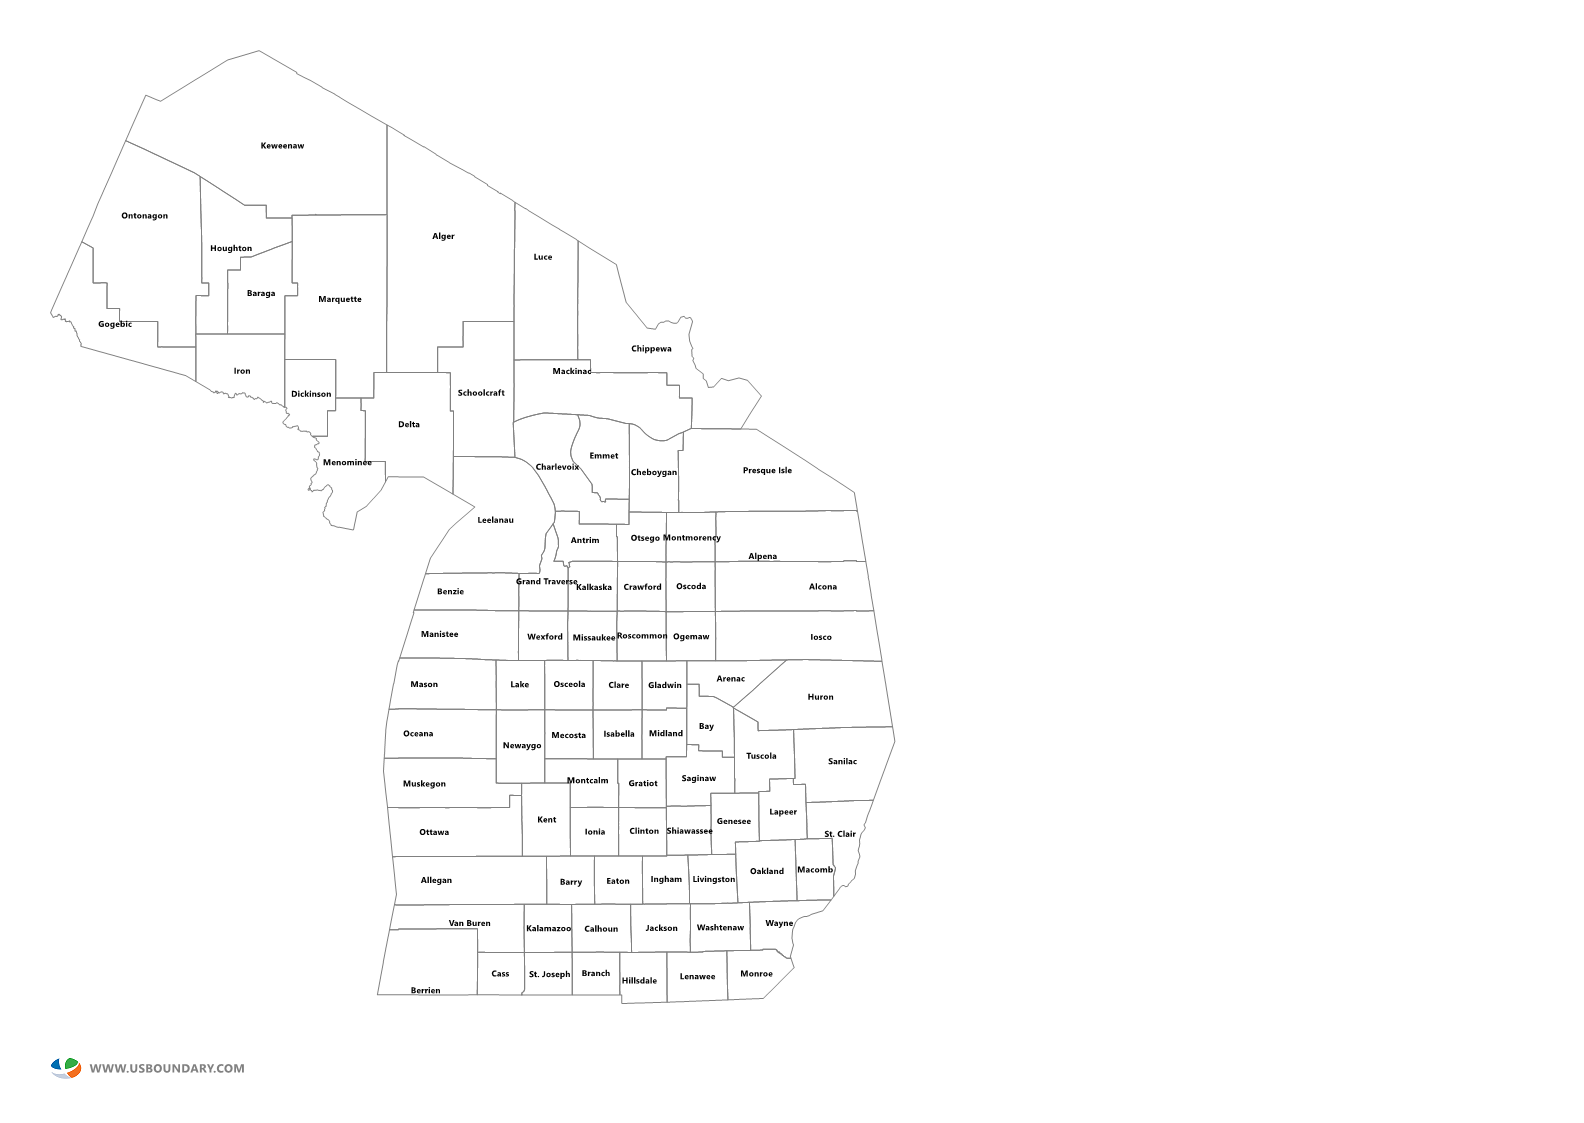 State Counties Maps Download - Michigan map of counties